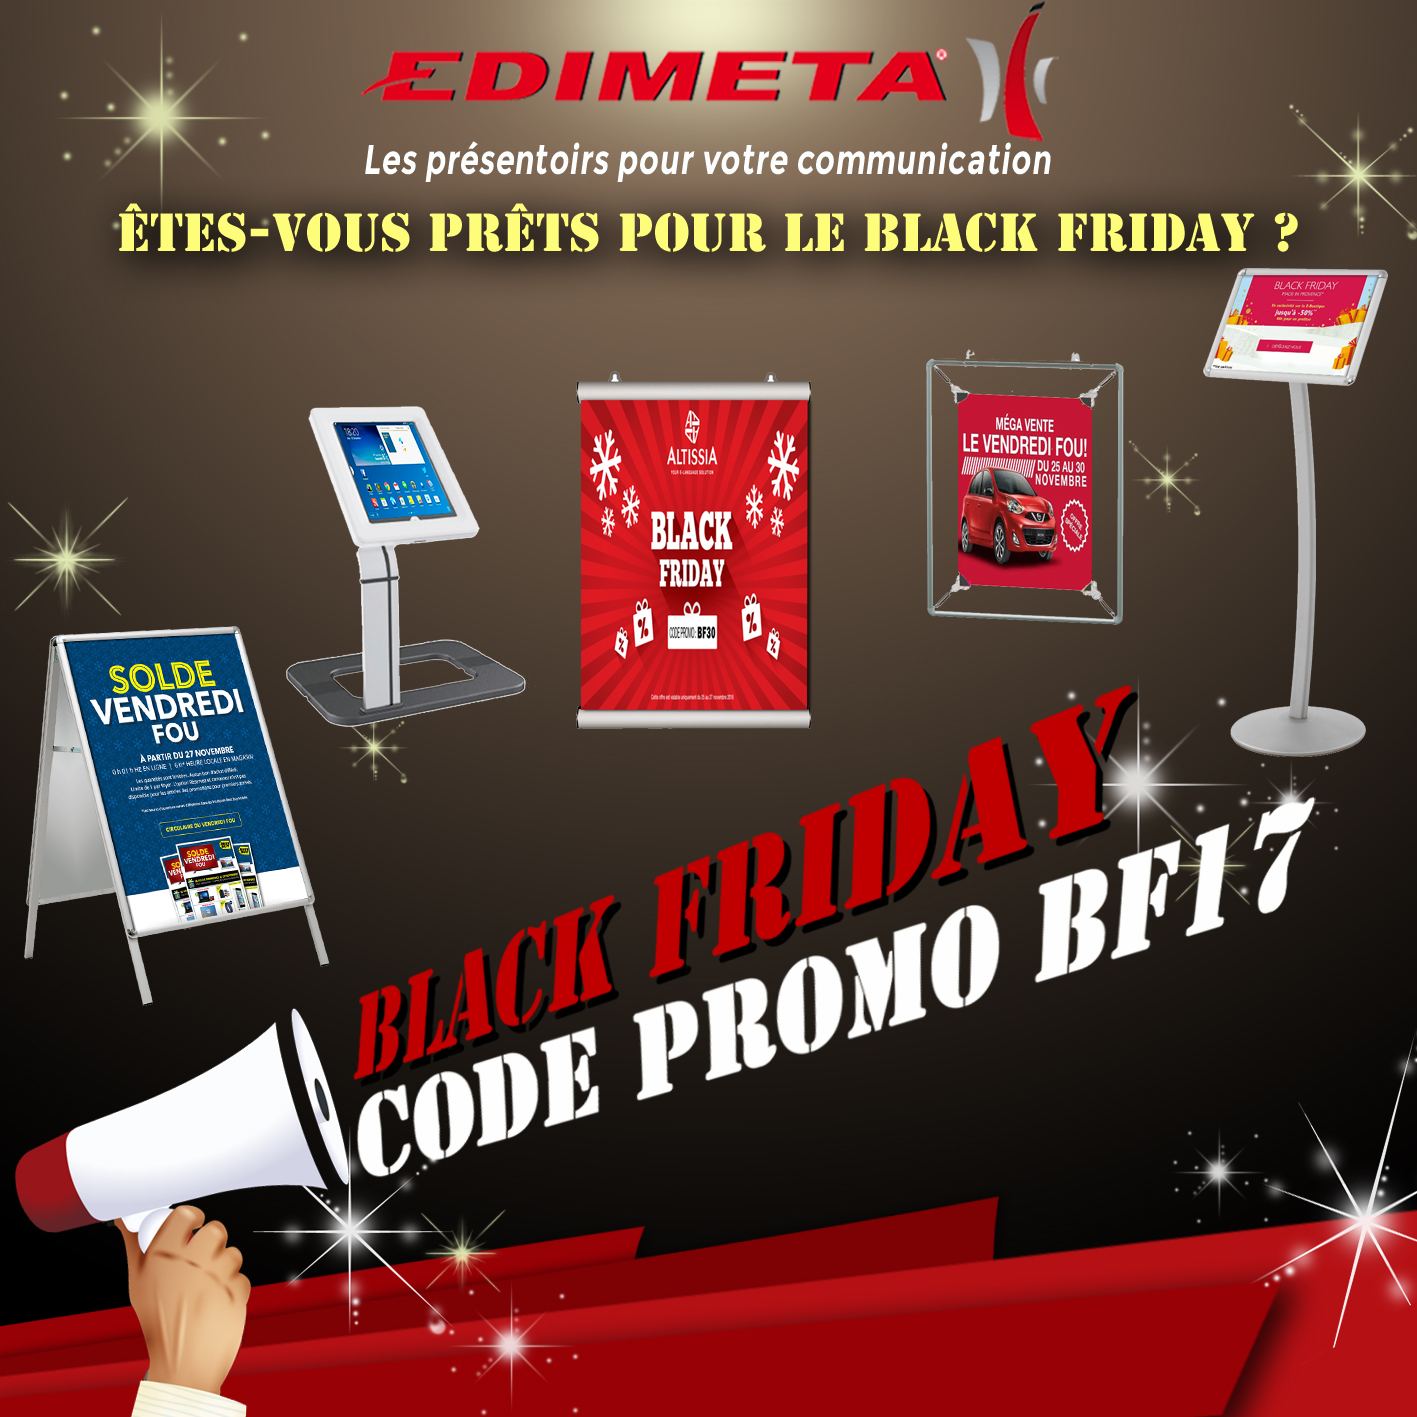 ALERTE BLACK FRIDAY WEEK !